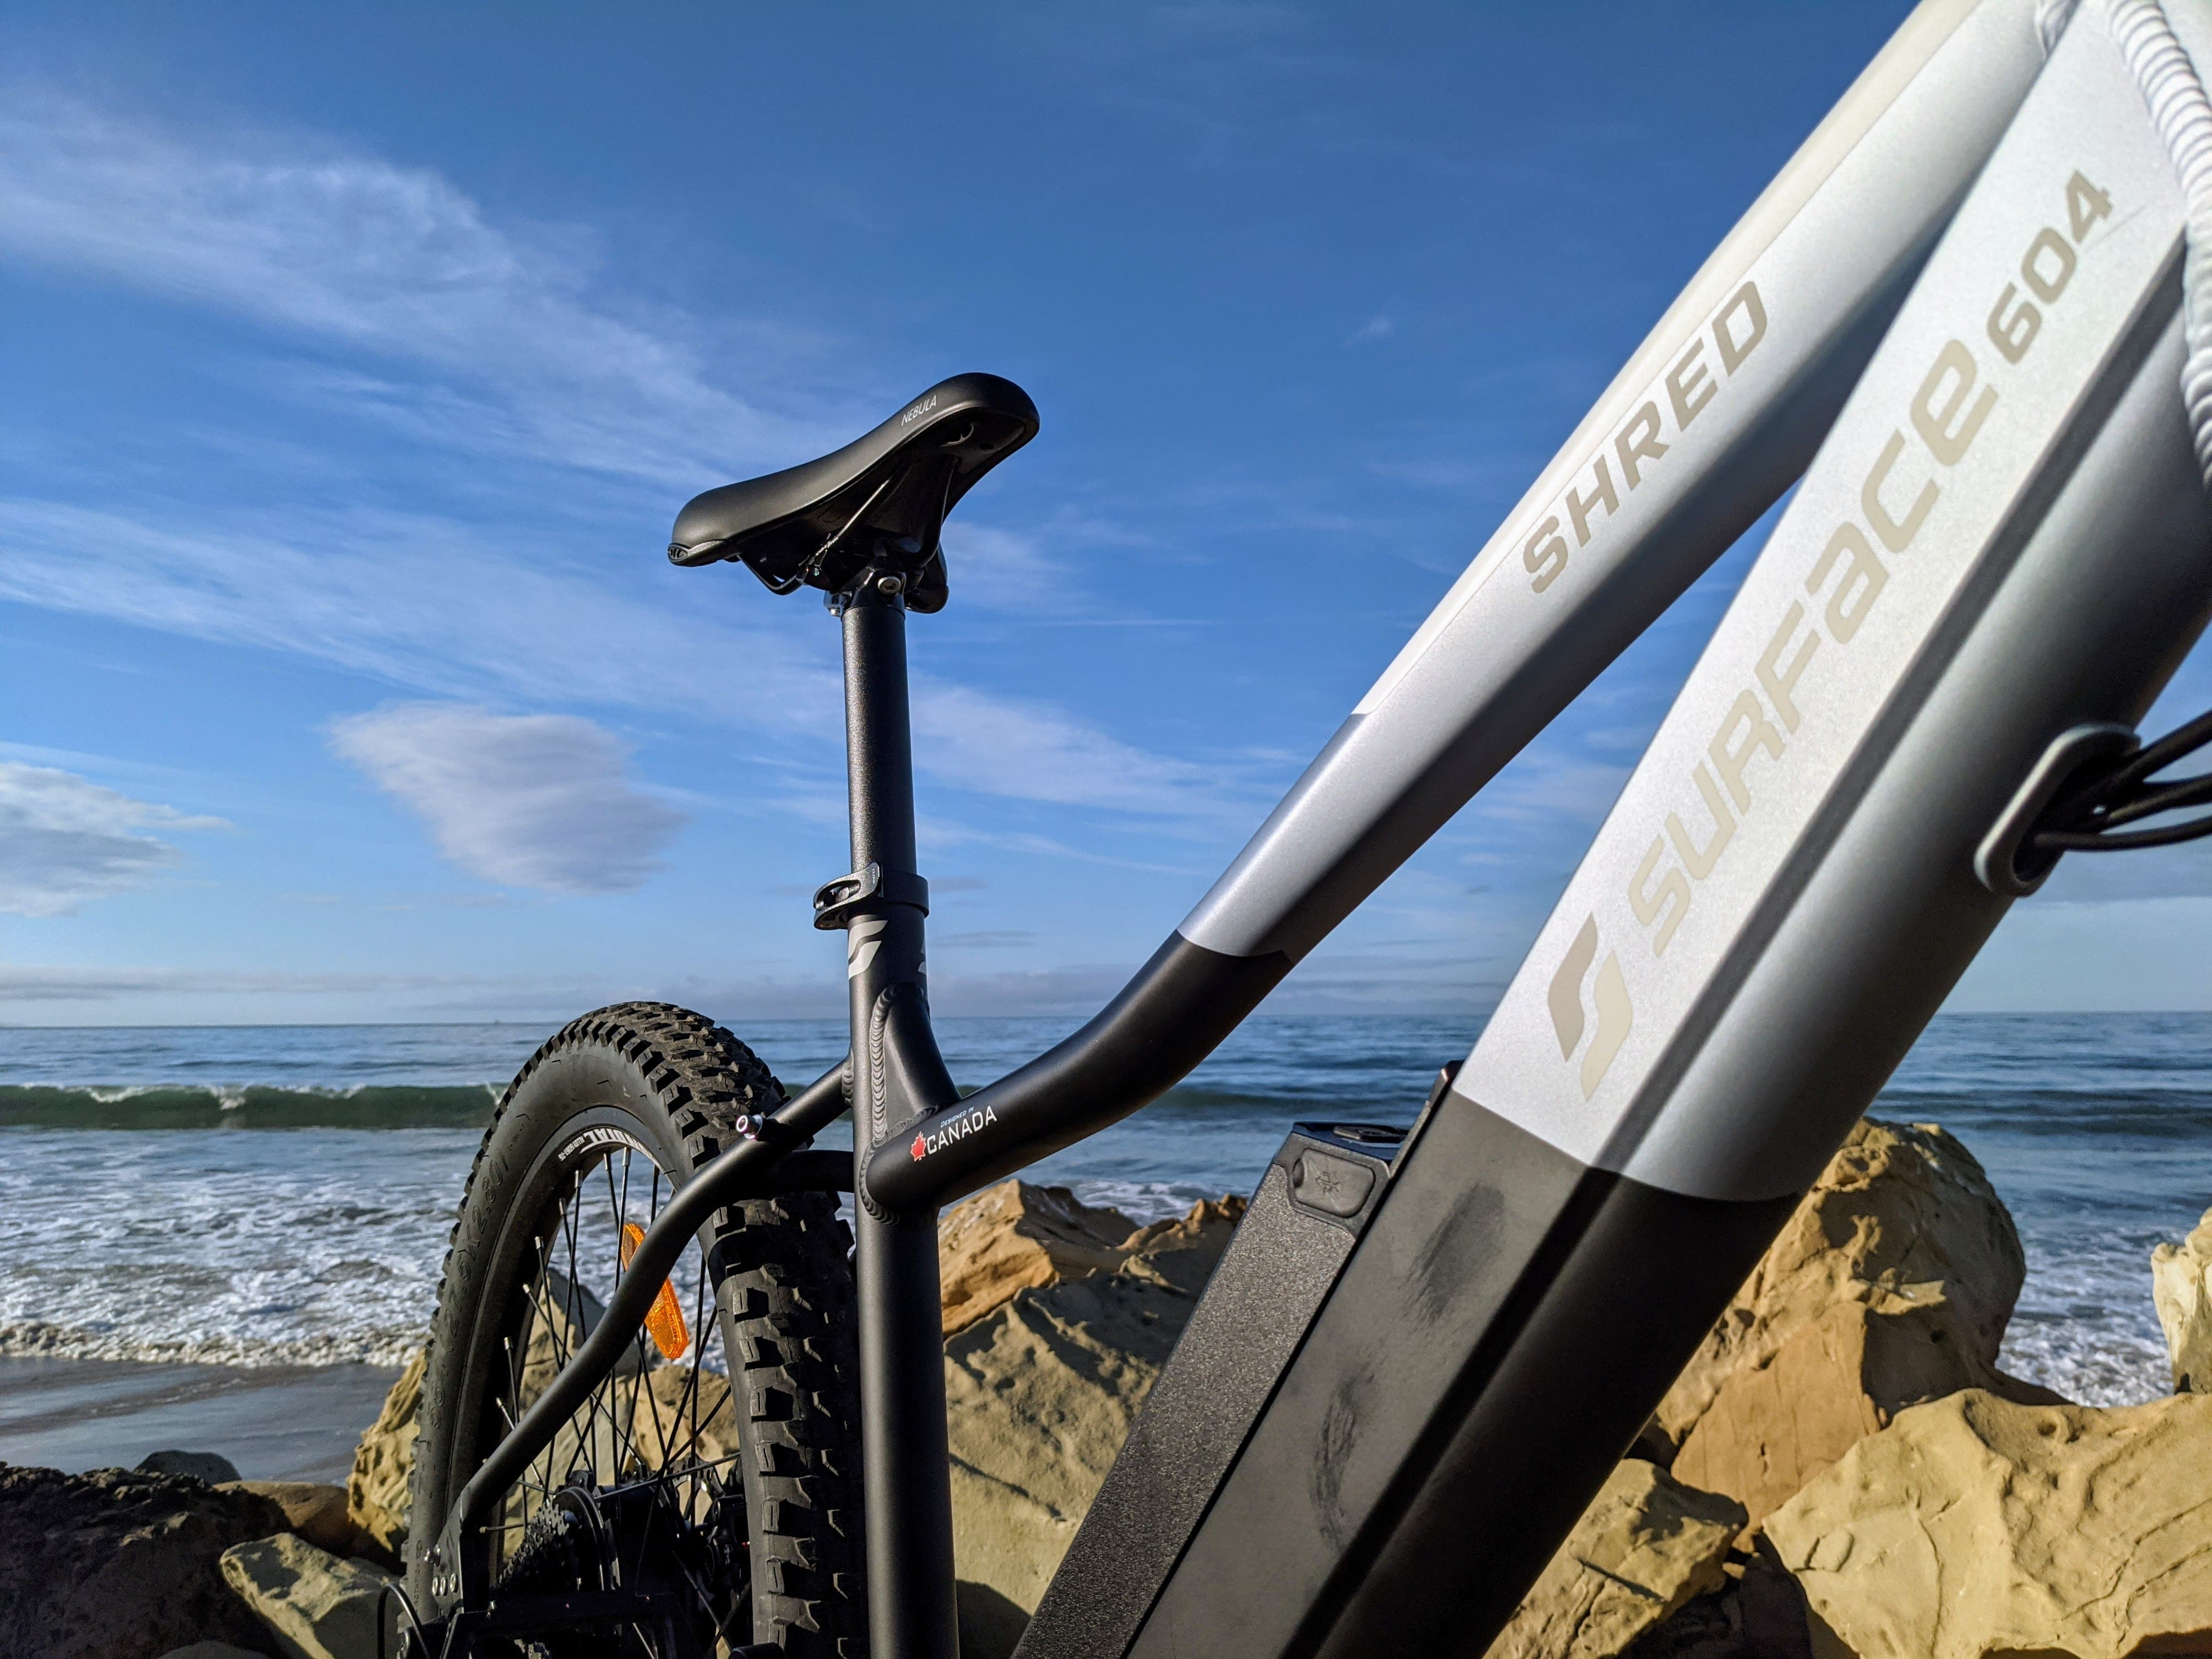 Surface 604 Shred e-bike